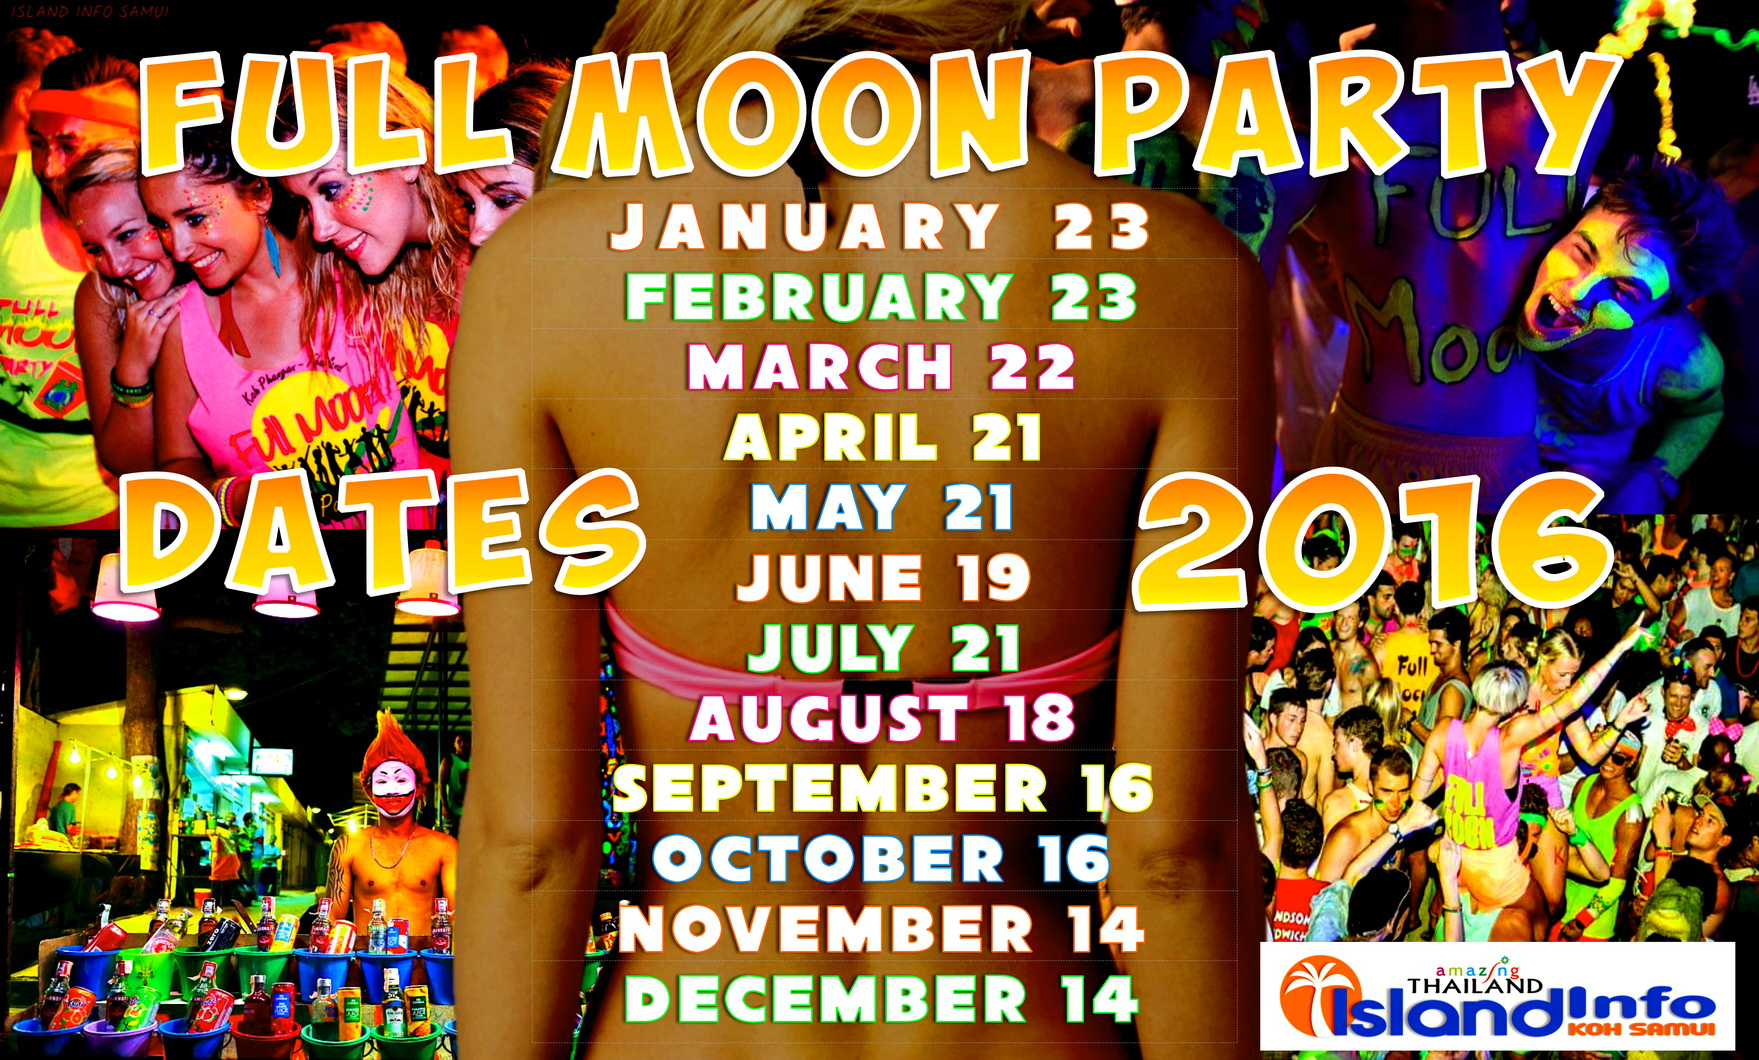 beaches buckets calendar dates full moon party full moon thailand ...